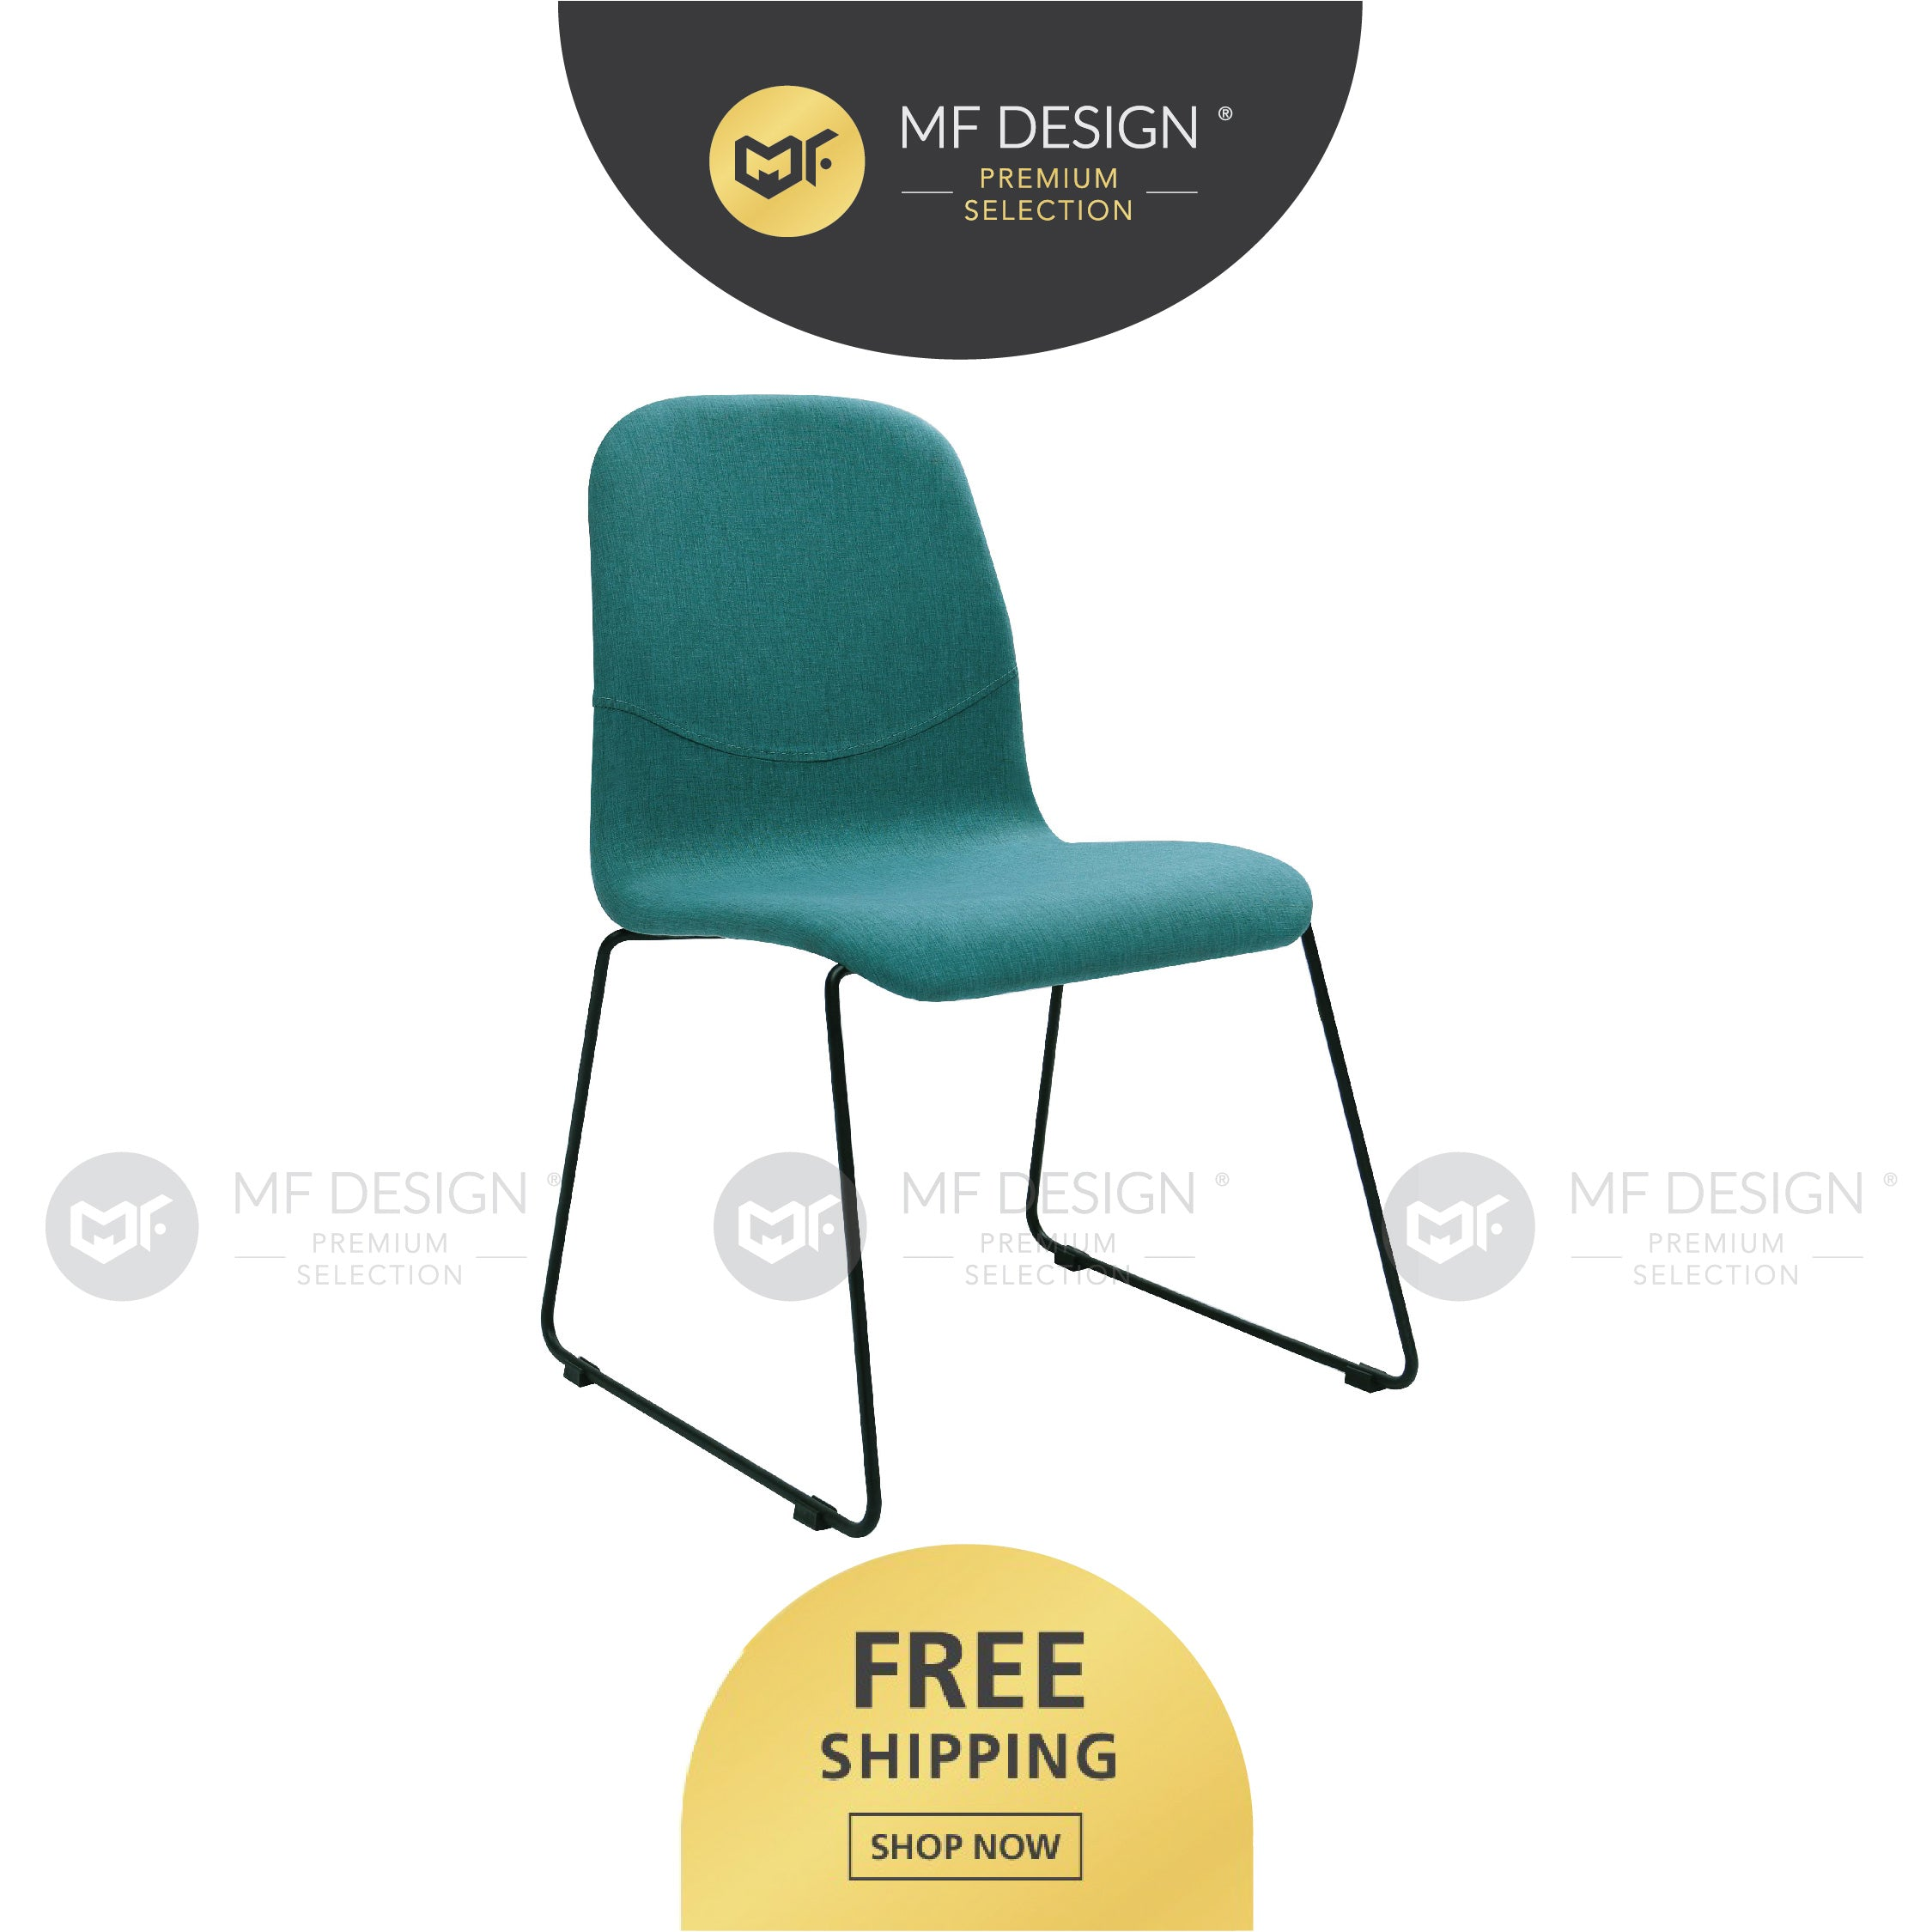 MFD Premium Aaron Dining Chair / Wooden Chair / Solid Rubber Wood / Kerusi Makan Kayu Getah / Living Room / Scandinavian